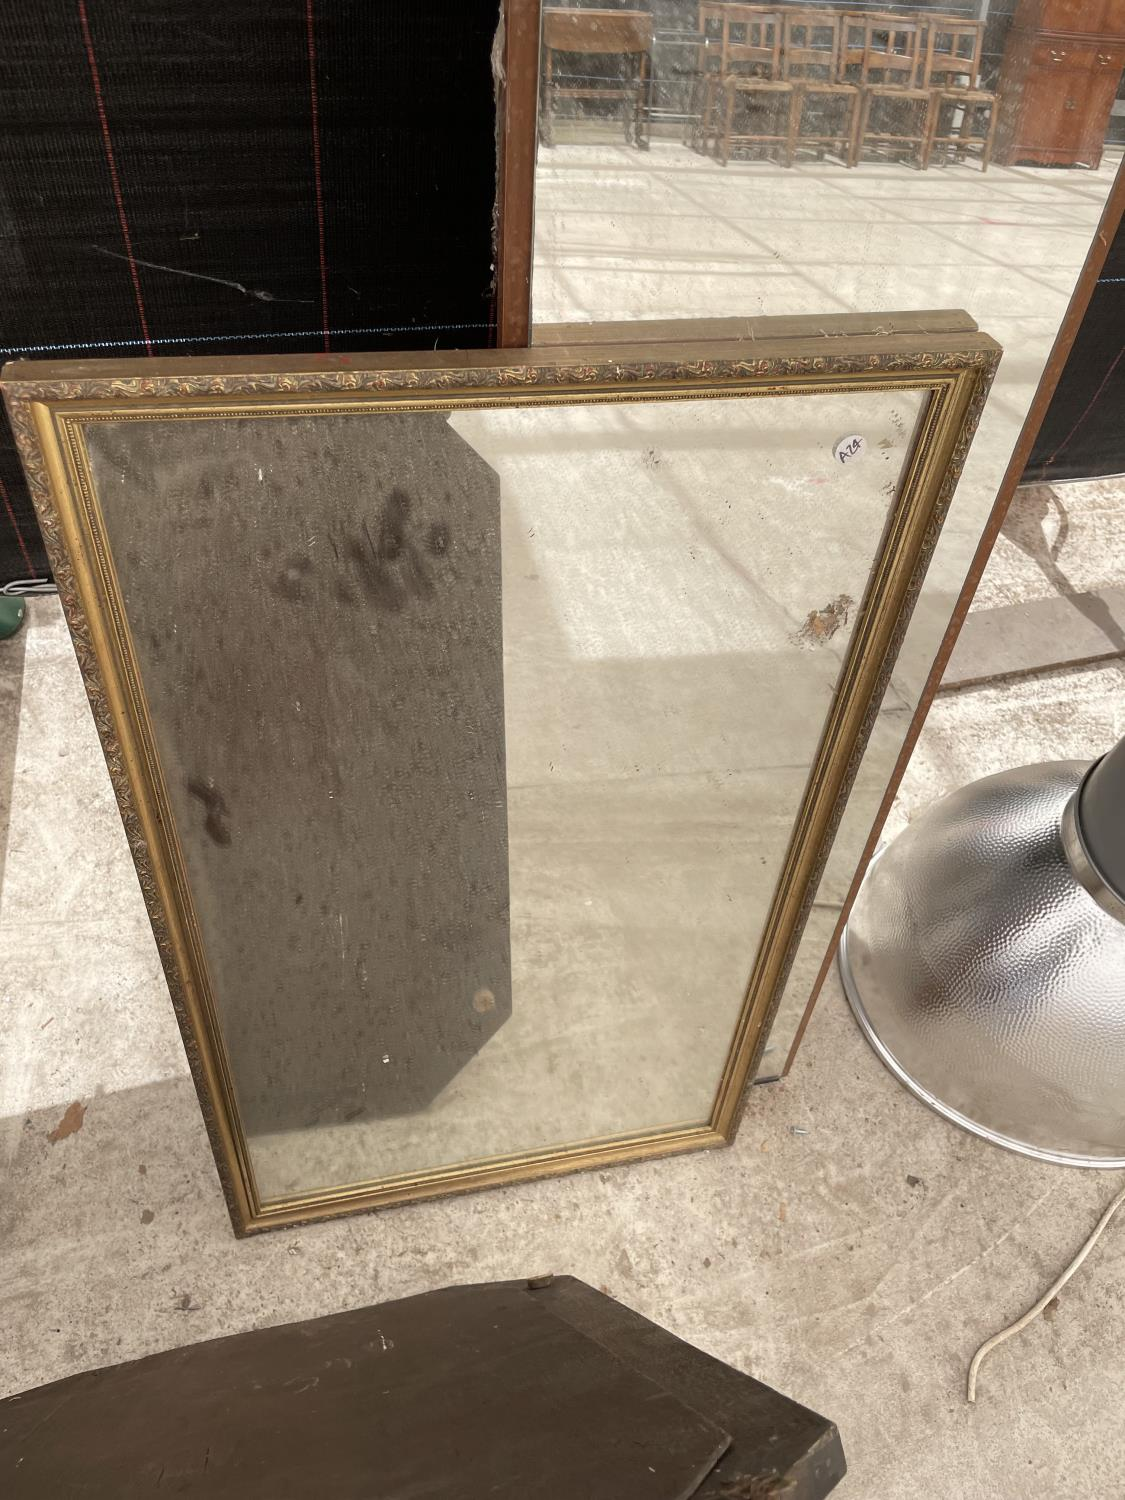 A GILT FRAMED MIRROR AND A FURTHER DECORATIVE WOODEN FRAMED BEVELED EDGE MIRROR AND A FULL LENGTH - Image 4 of 6